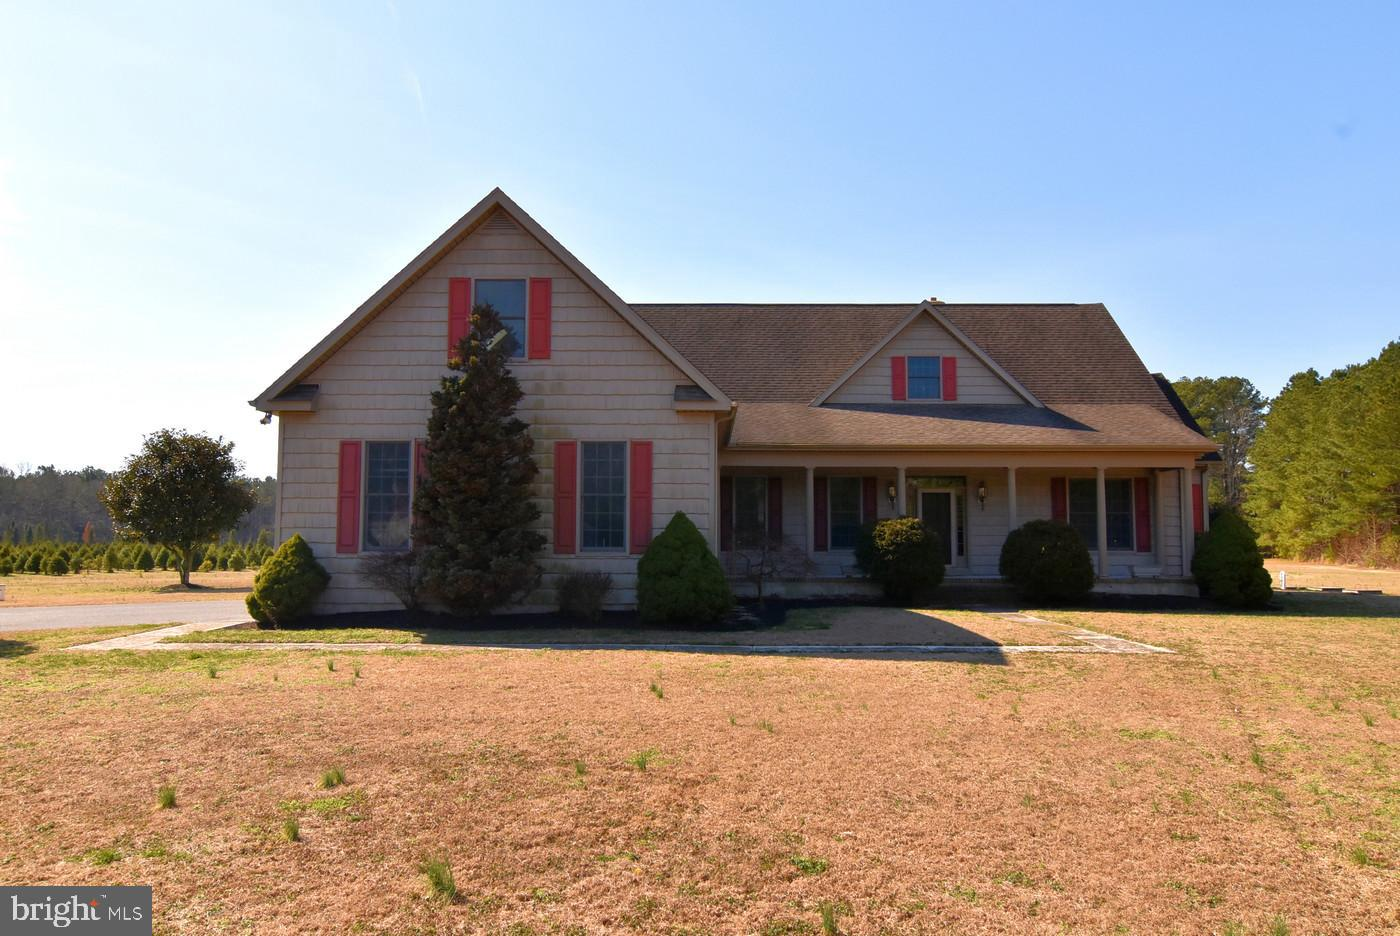 Searching   for a  beautiful , private , maybe income producing opportunity , Tree farm w/ tree inventory , farm equipment ( Kubota Tractor w / accessories,  Atv's , w/ trailers, MOWERS , several augers  chain  saws , baler, tree shaker and more , all this this may be yours.   Resting on 20.1 acres , a wonderful home for over 18 years to OWNERS and one can see and feel the   their  pride in  maintaining their  special  place   . The  home is 4 bedrooms 3 full and 1 half bath   , two fireplaces one wood ( in Living Room ) and a  propane see through in master bedroom into   a very light filled  and airy in home office . Even, I could see with all that natural light .! Two walk in closets , large master bath , visit and you will see  . Very open ,floor plan , great for entertaining  with over sized almost a commercial kitchen  , sit at counter , or breakfast table ,  plenty of (of windows ) for extra sun light and very special views . Your dinner guest  can be seated in the formal dining room  . Real Hardwood  floors , in like new condition . A home with flow and charm ,, could be yours -unfinished second floor . * note sellers have an interested  investor , who wishes to lease the tree farm for the new owner , an added value if your searching for a home and investment property .